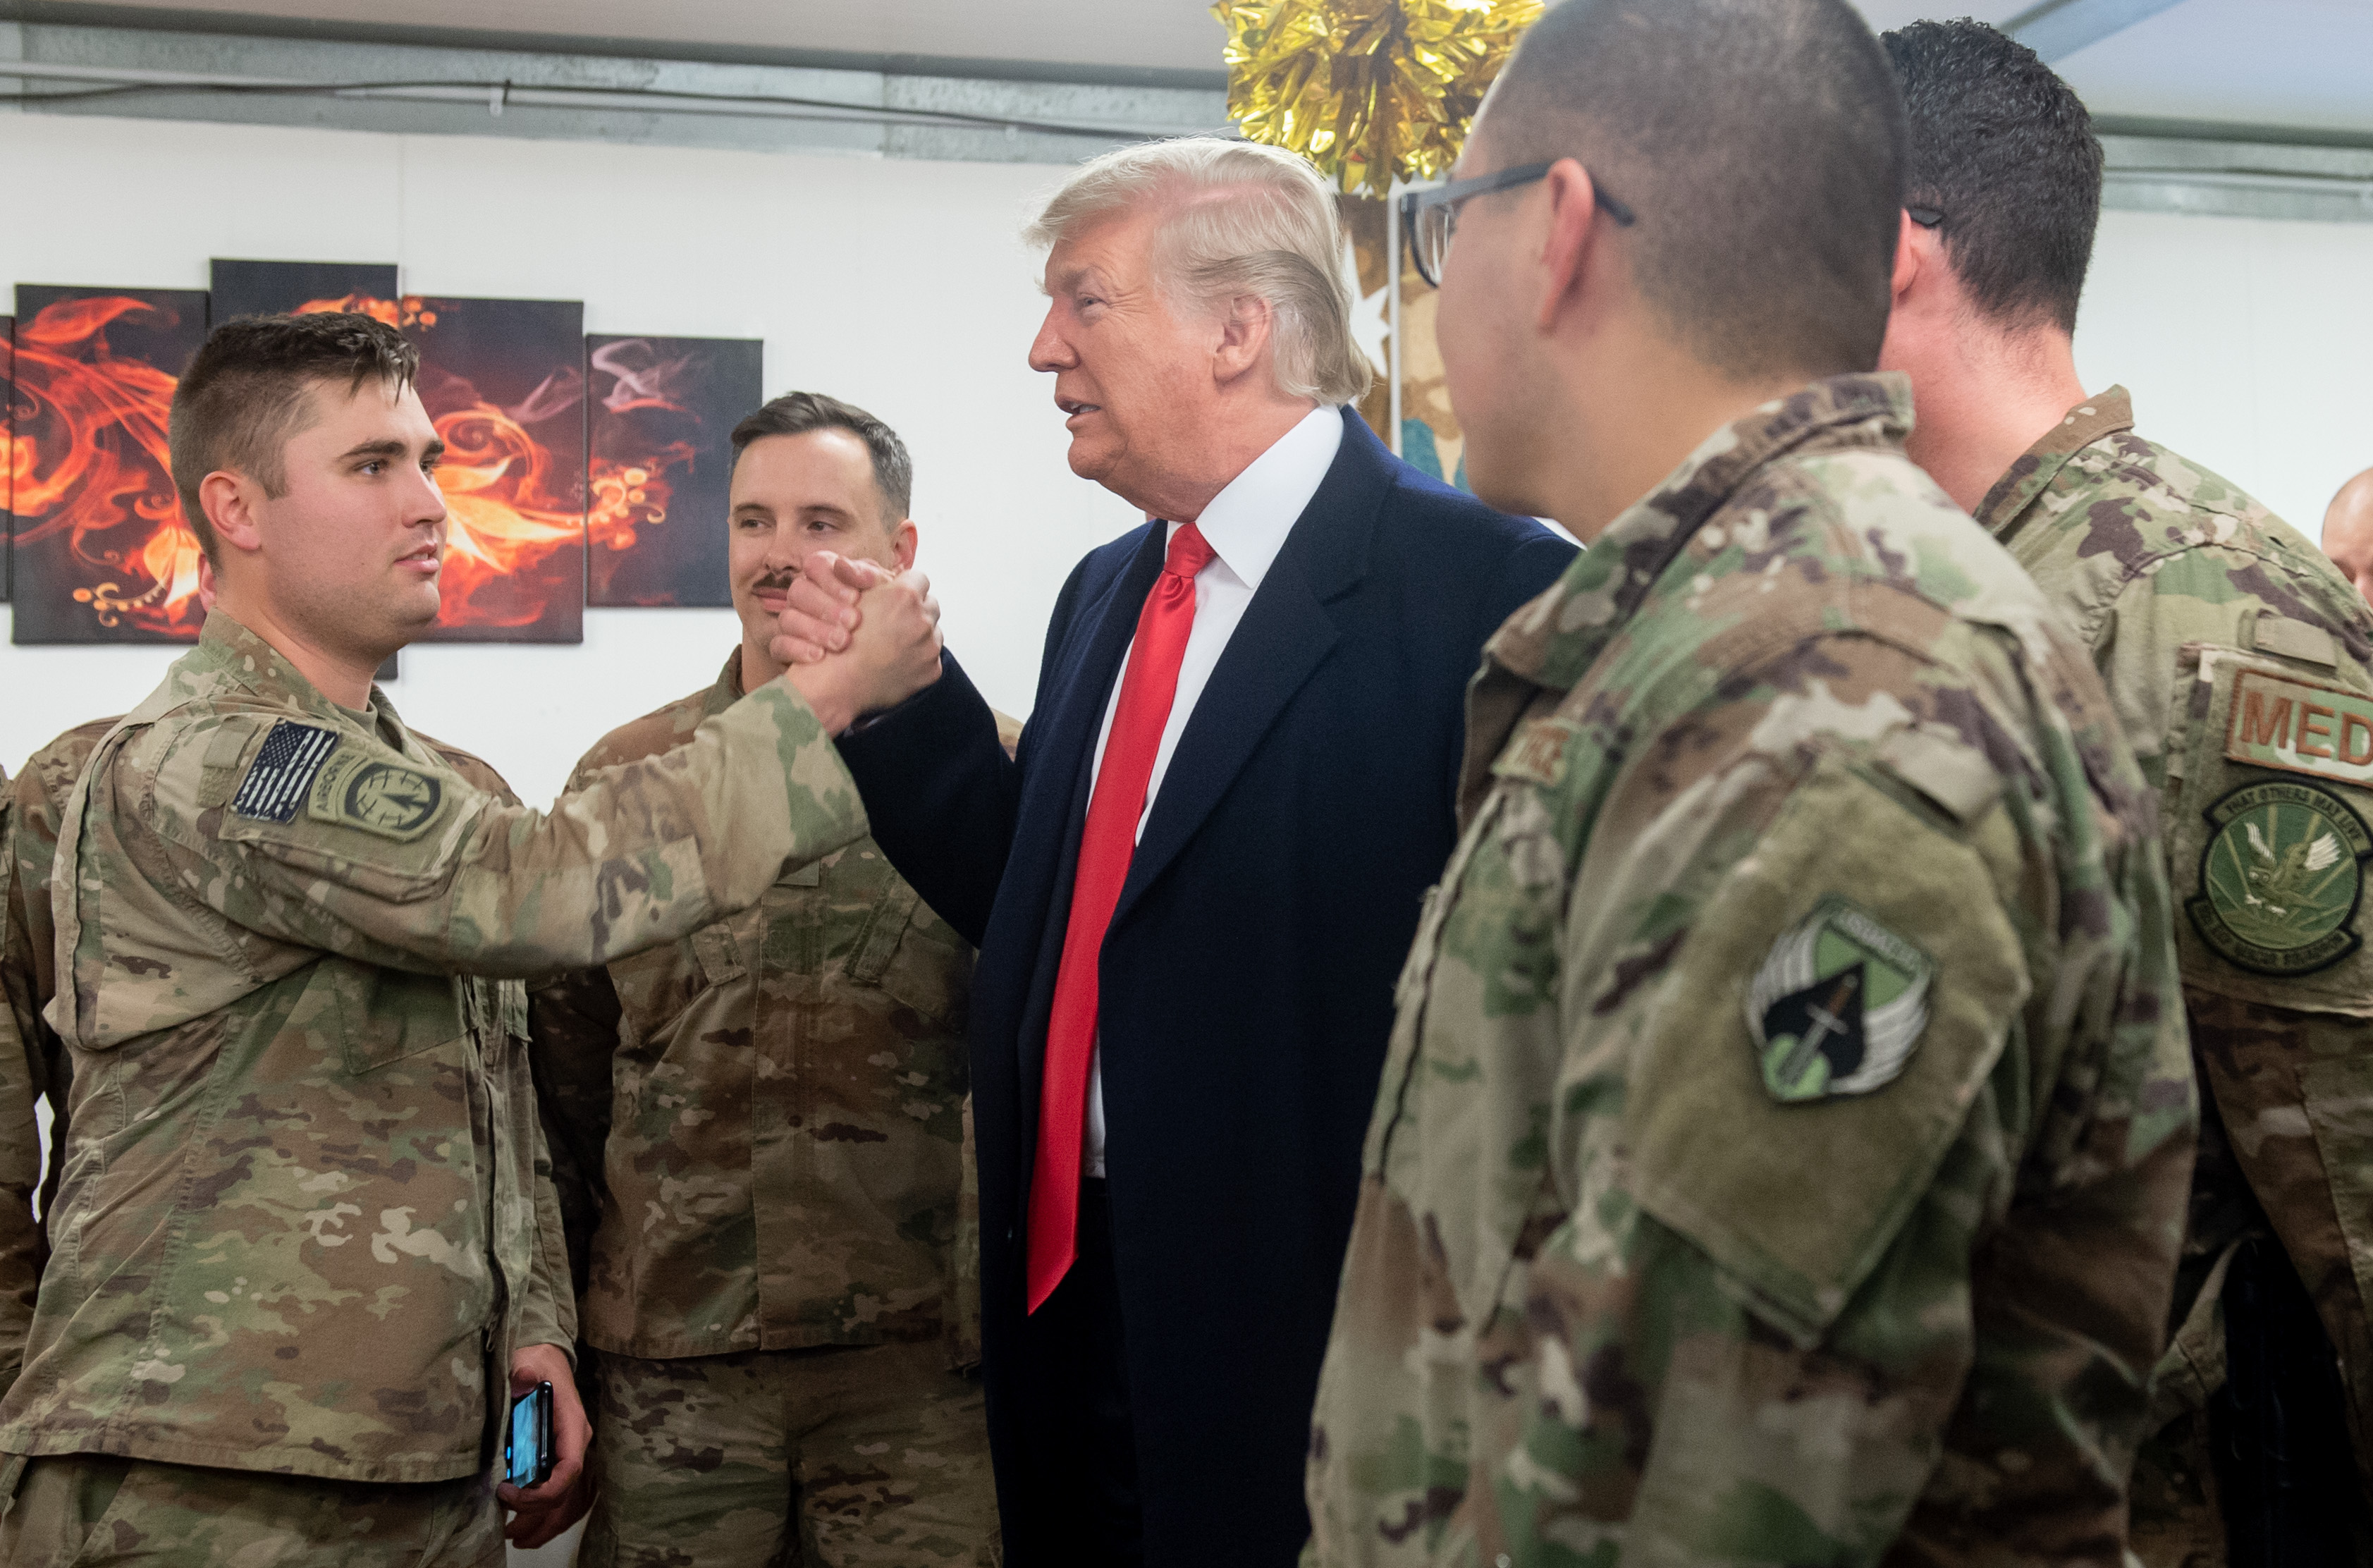 US President Donald Trump greets members of the US military during an unannounced trip to Al Asad Air Base in Iraq on December 26, 2018. (Photo by SAUL LOEB / AFP)